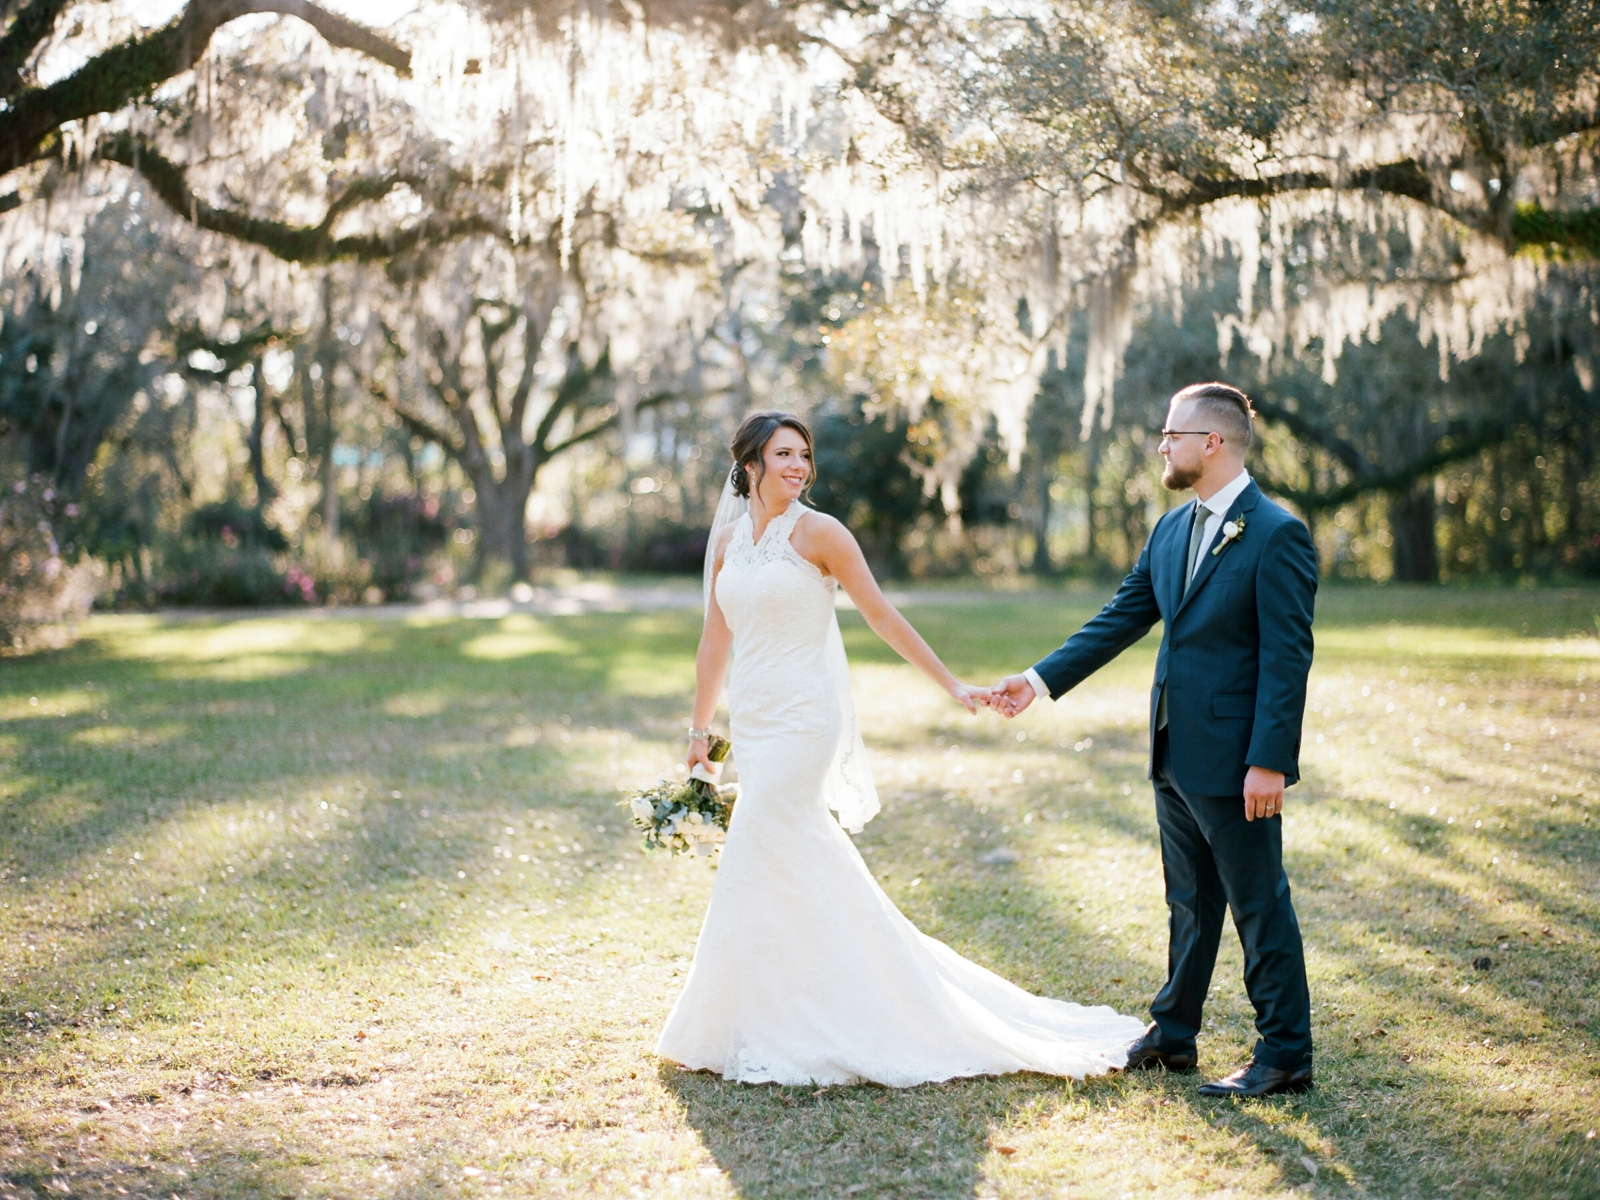 goodwood museum tallahassee wedding photographer - tallahassee florida - shannon griffin_0016.jpg